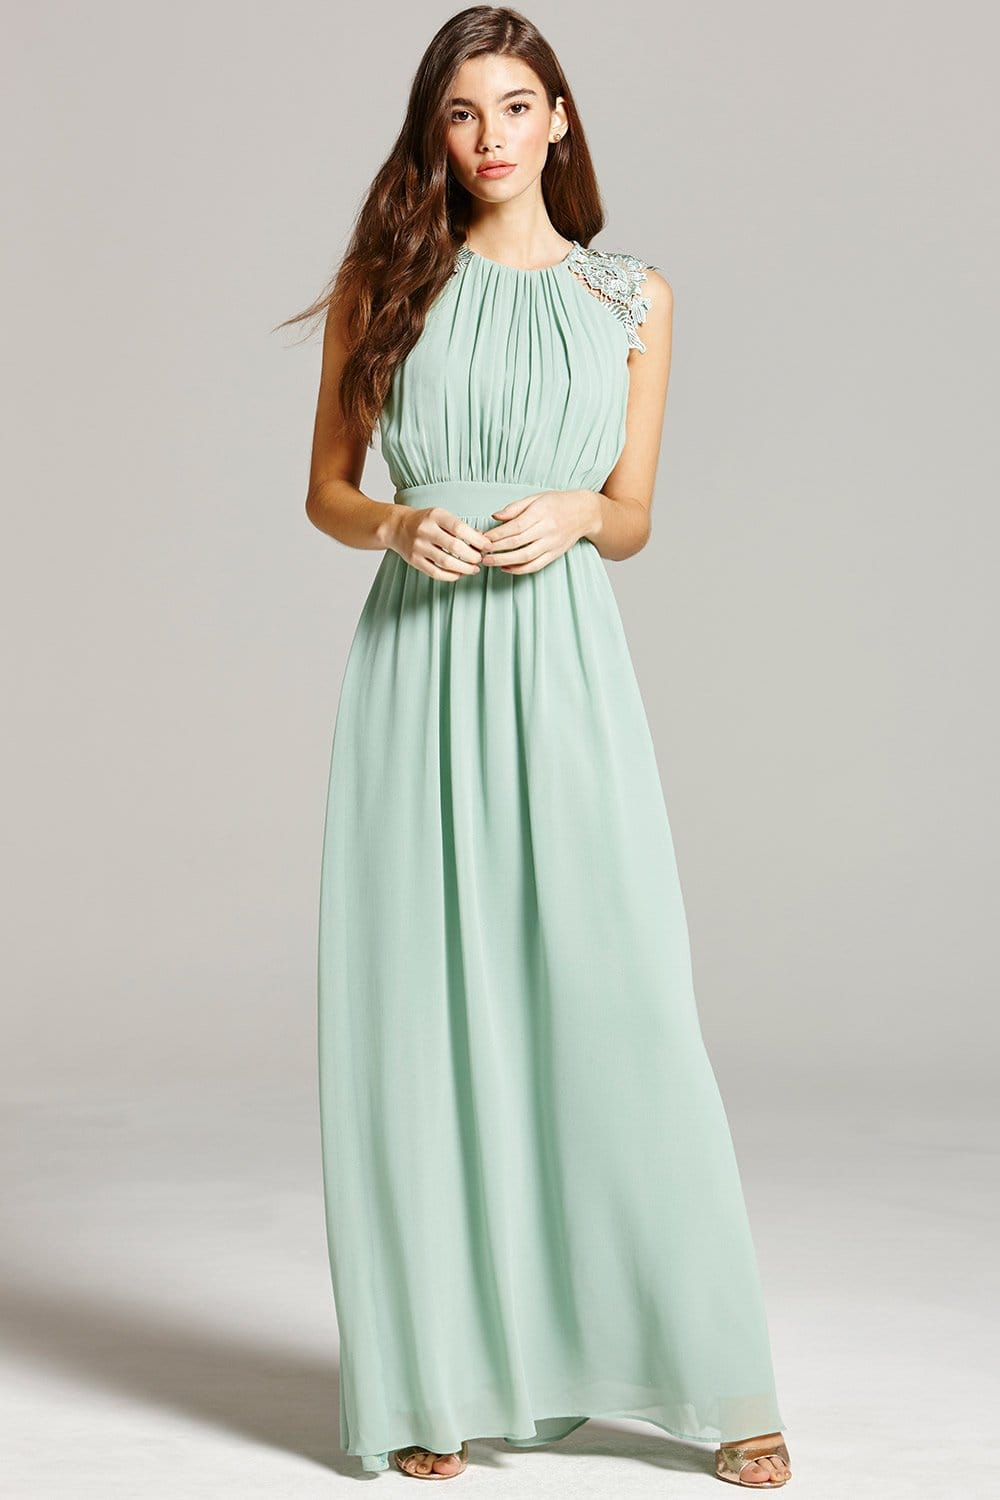 Sage Lace and Pleat Maxi Dress  from Little Mistress UK